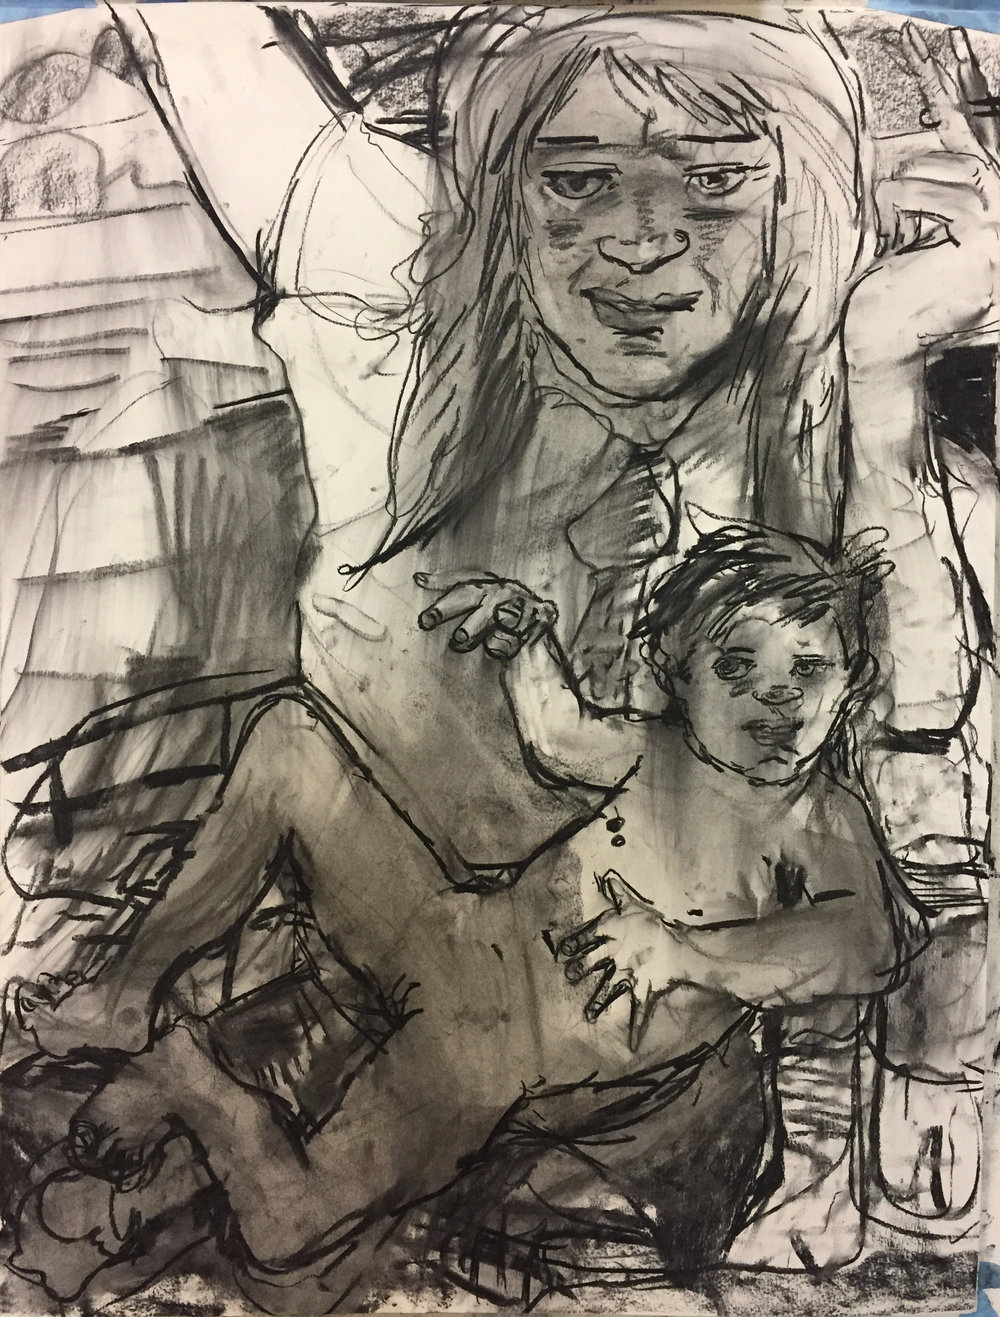 Mamma 18 by 24 inches charcoal on paper 2017.jpg